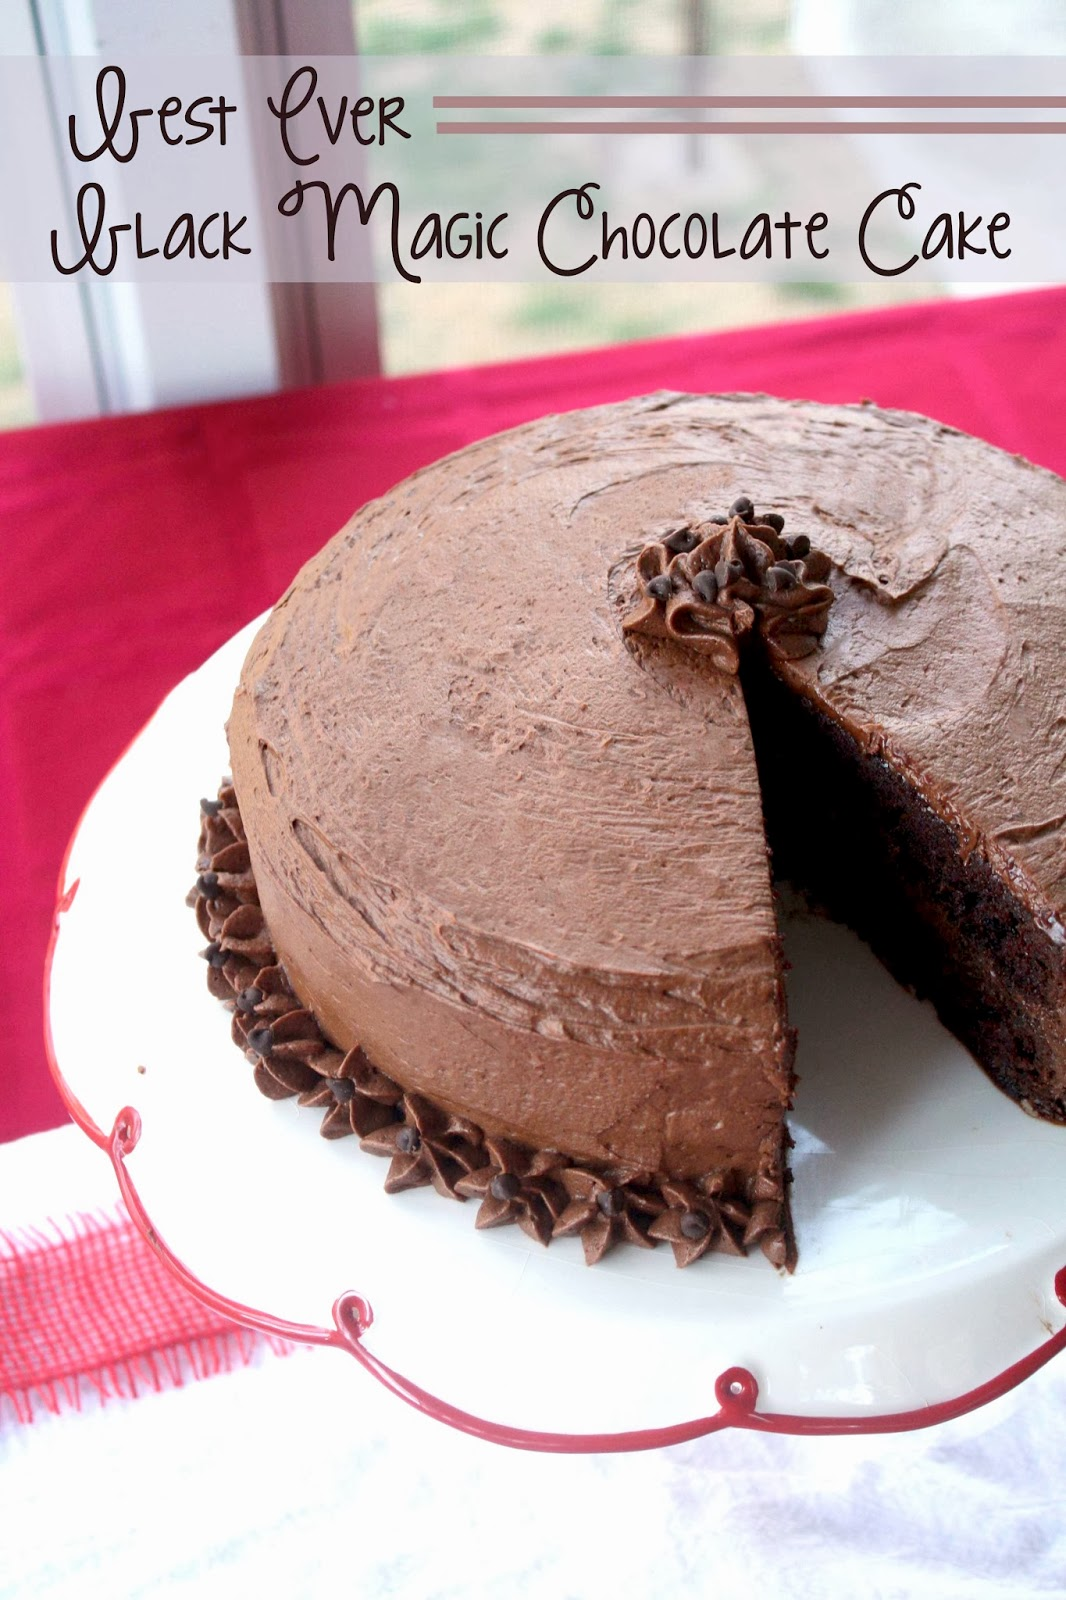 Chocolate Therapy: Rich Chocolate Cake with Whipped Chocolate Frosting